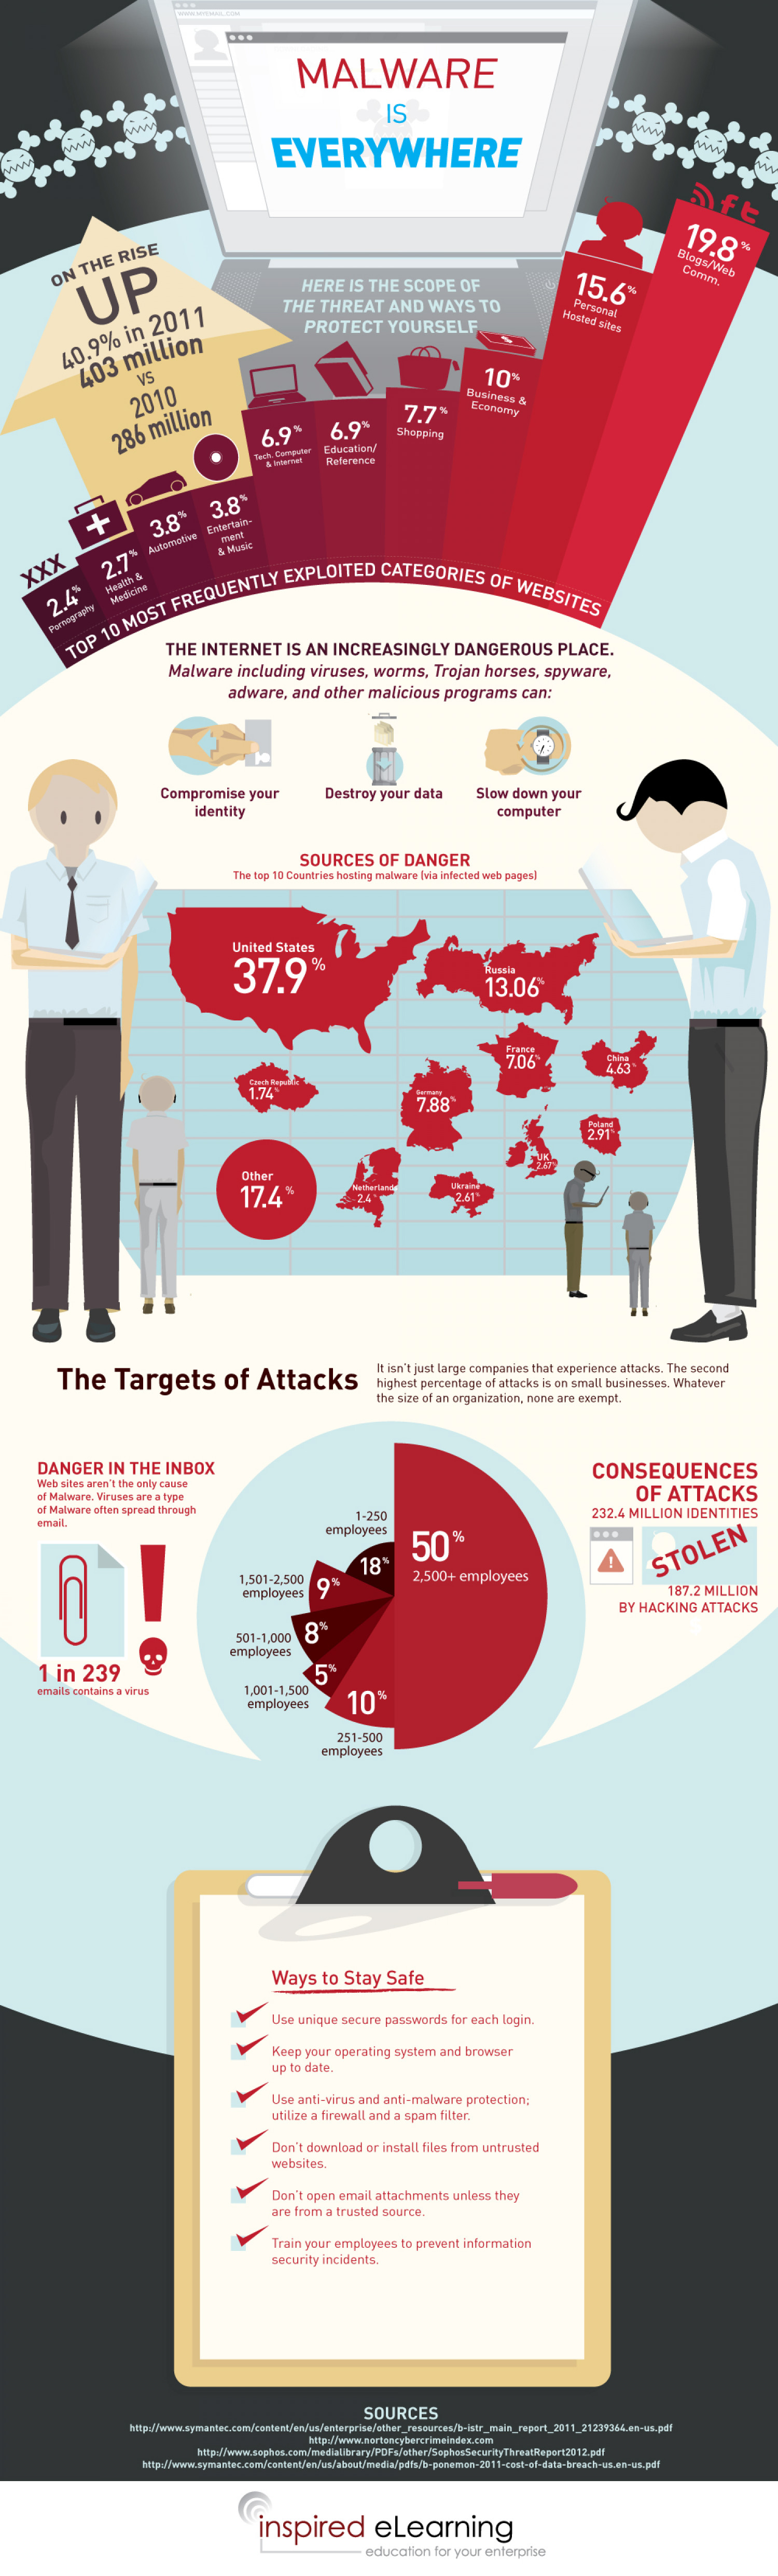 Malware is Everywhere Infographic